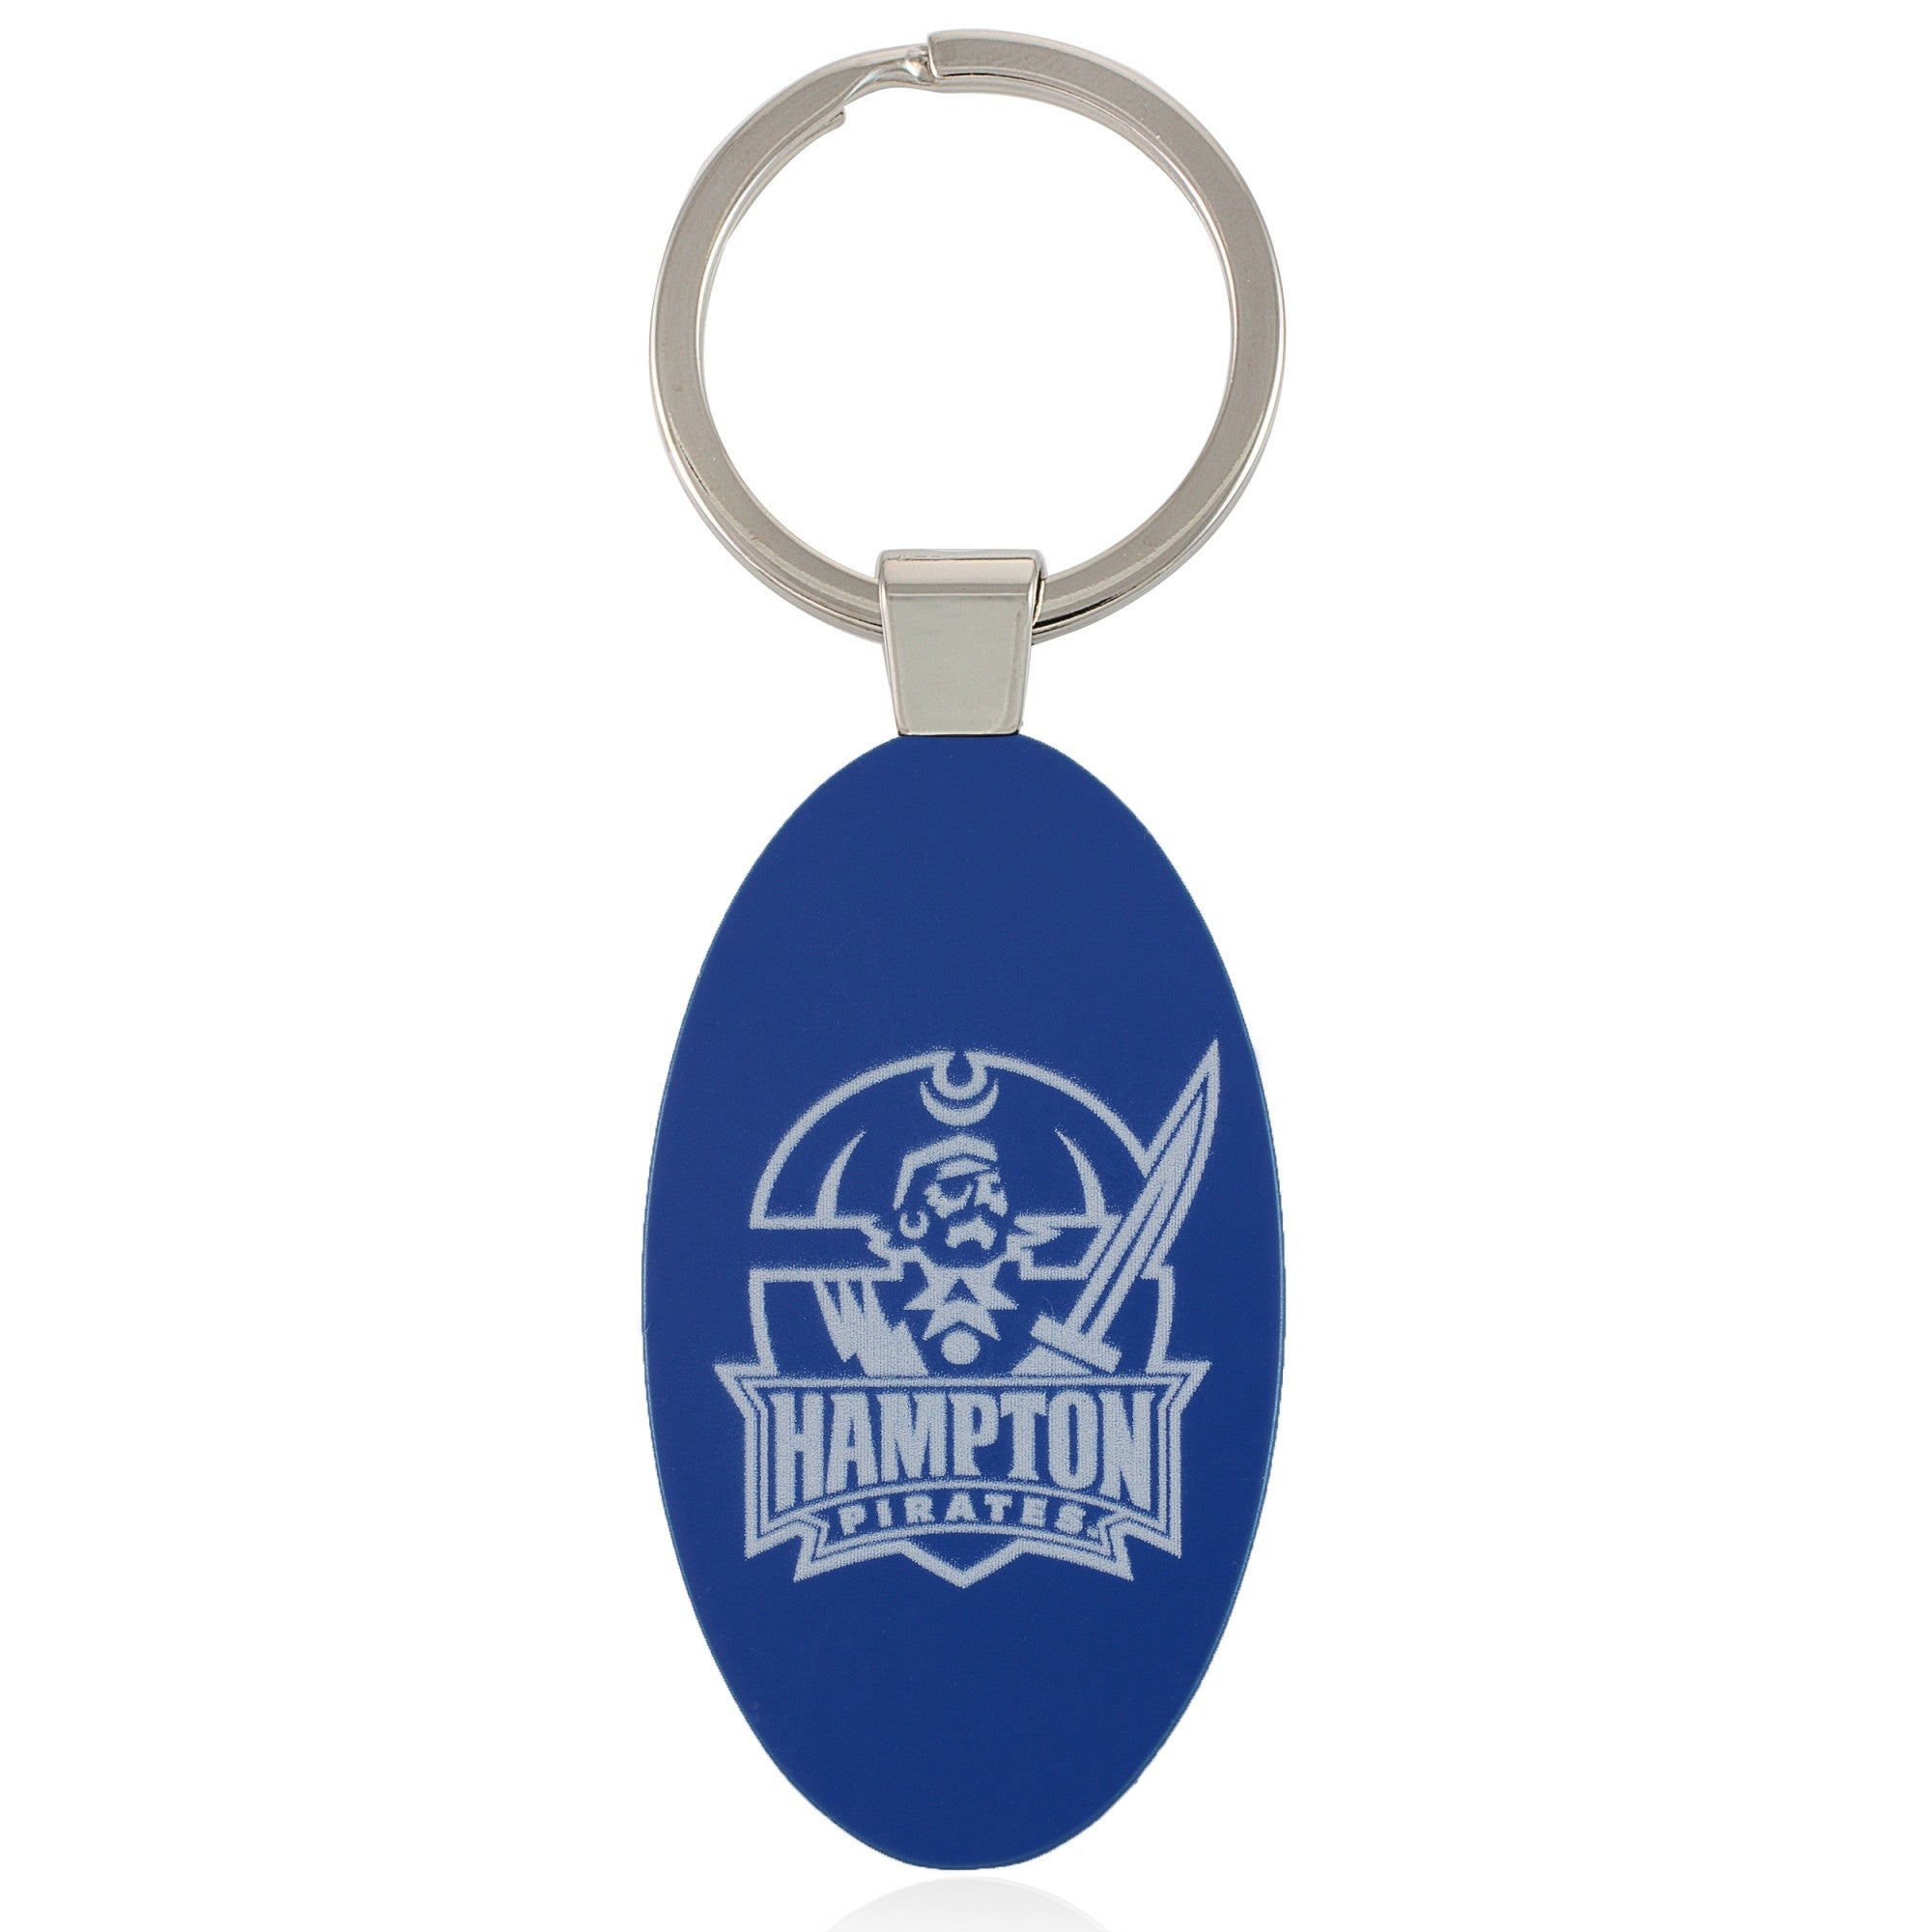 Hampton University Pirates Key Chain